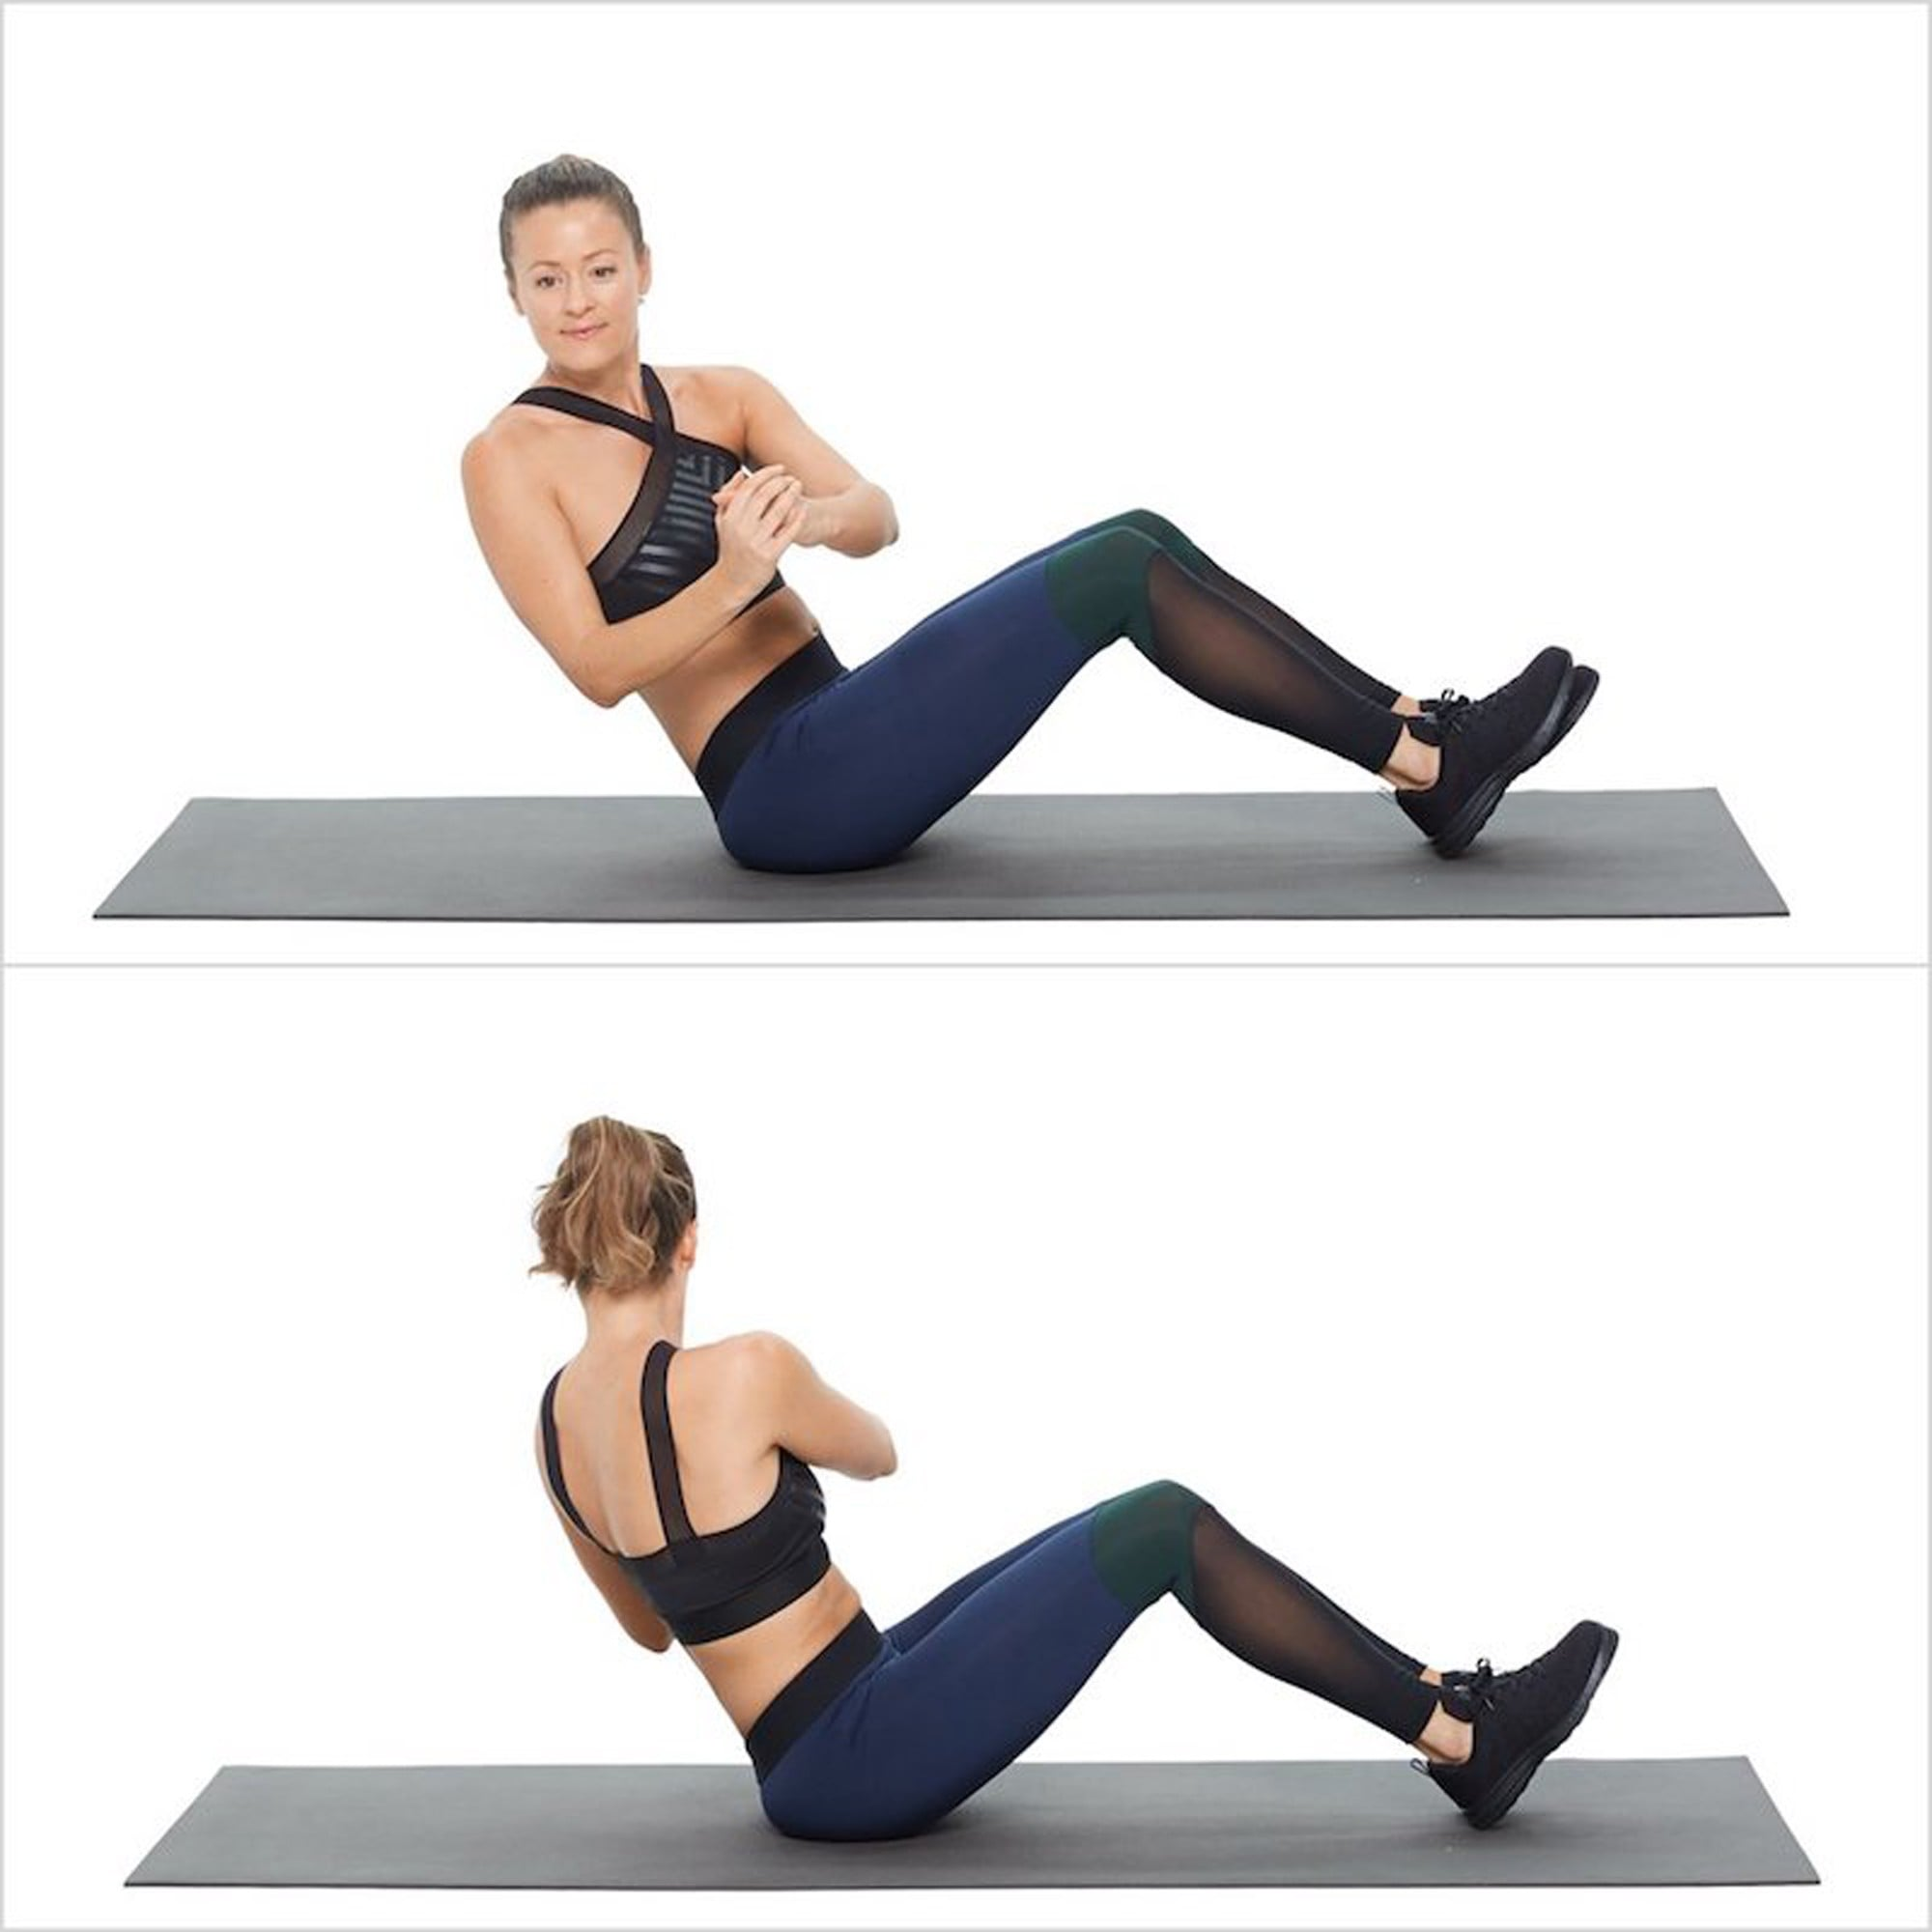 toe touch crunches simple ab exercises popsugar fitness photo 10